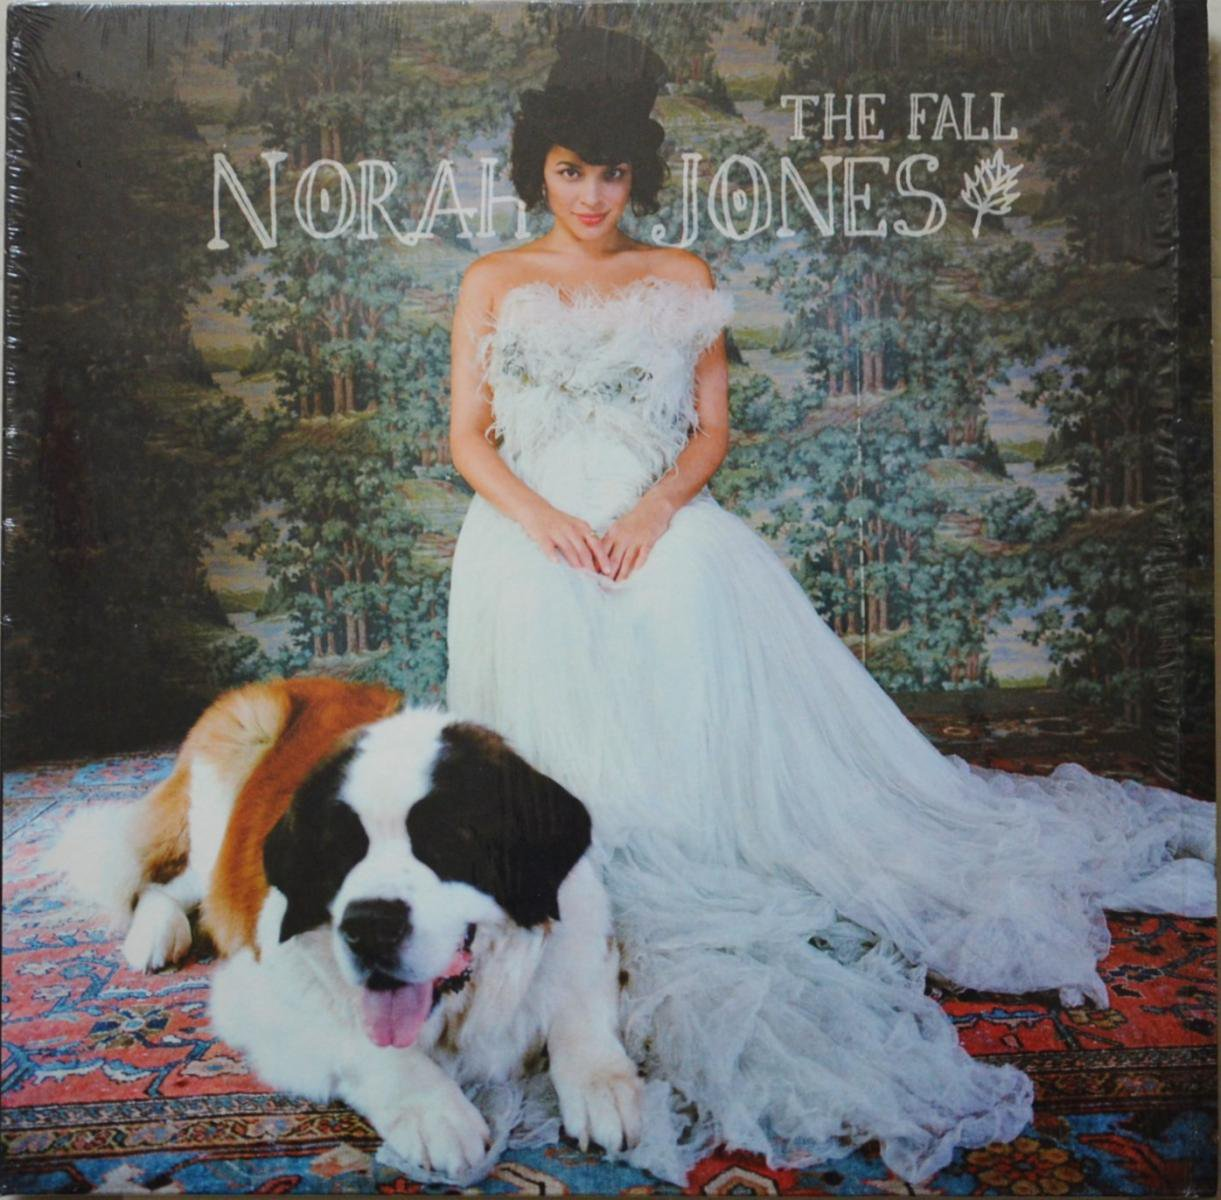 NORAH JONES ‎/ THE FALL (1LP)